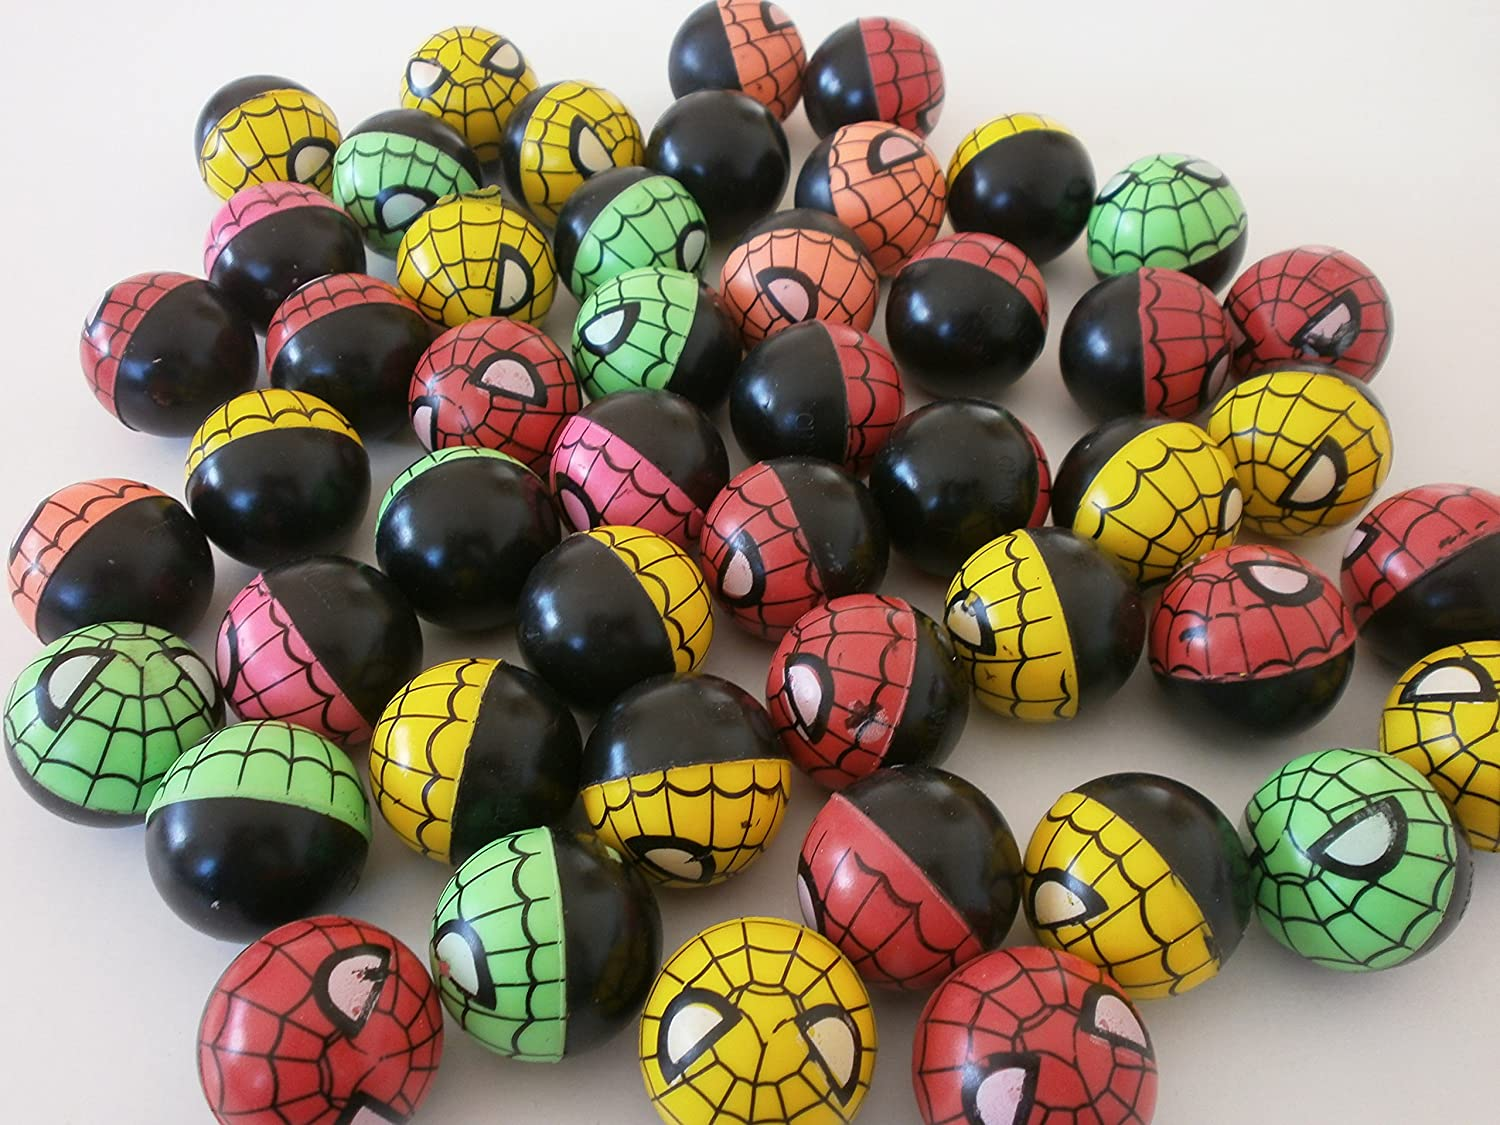 100 x Flummi im Spinnen-Design 30mm Spider Ball Gummiball